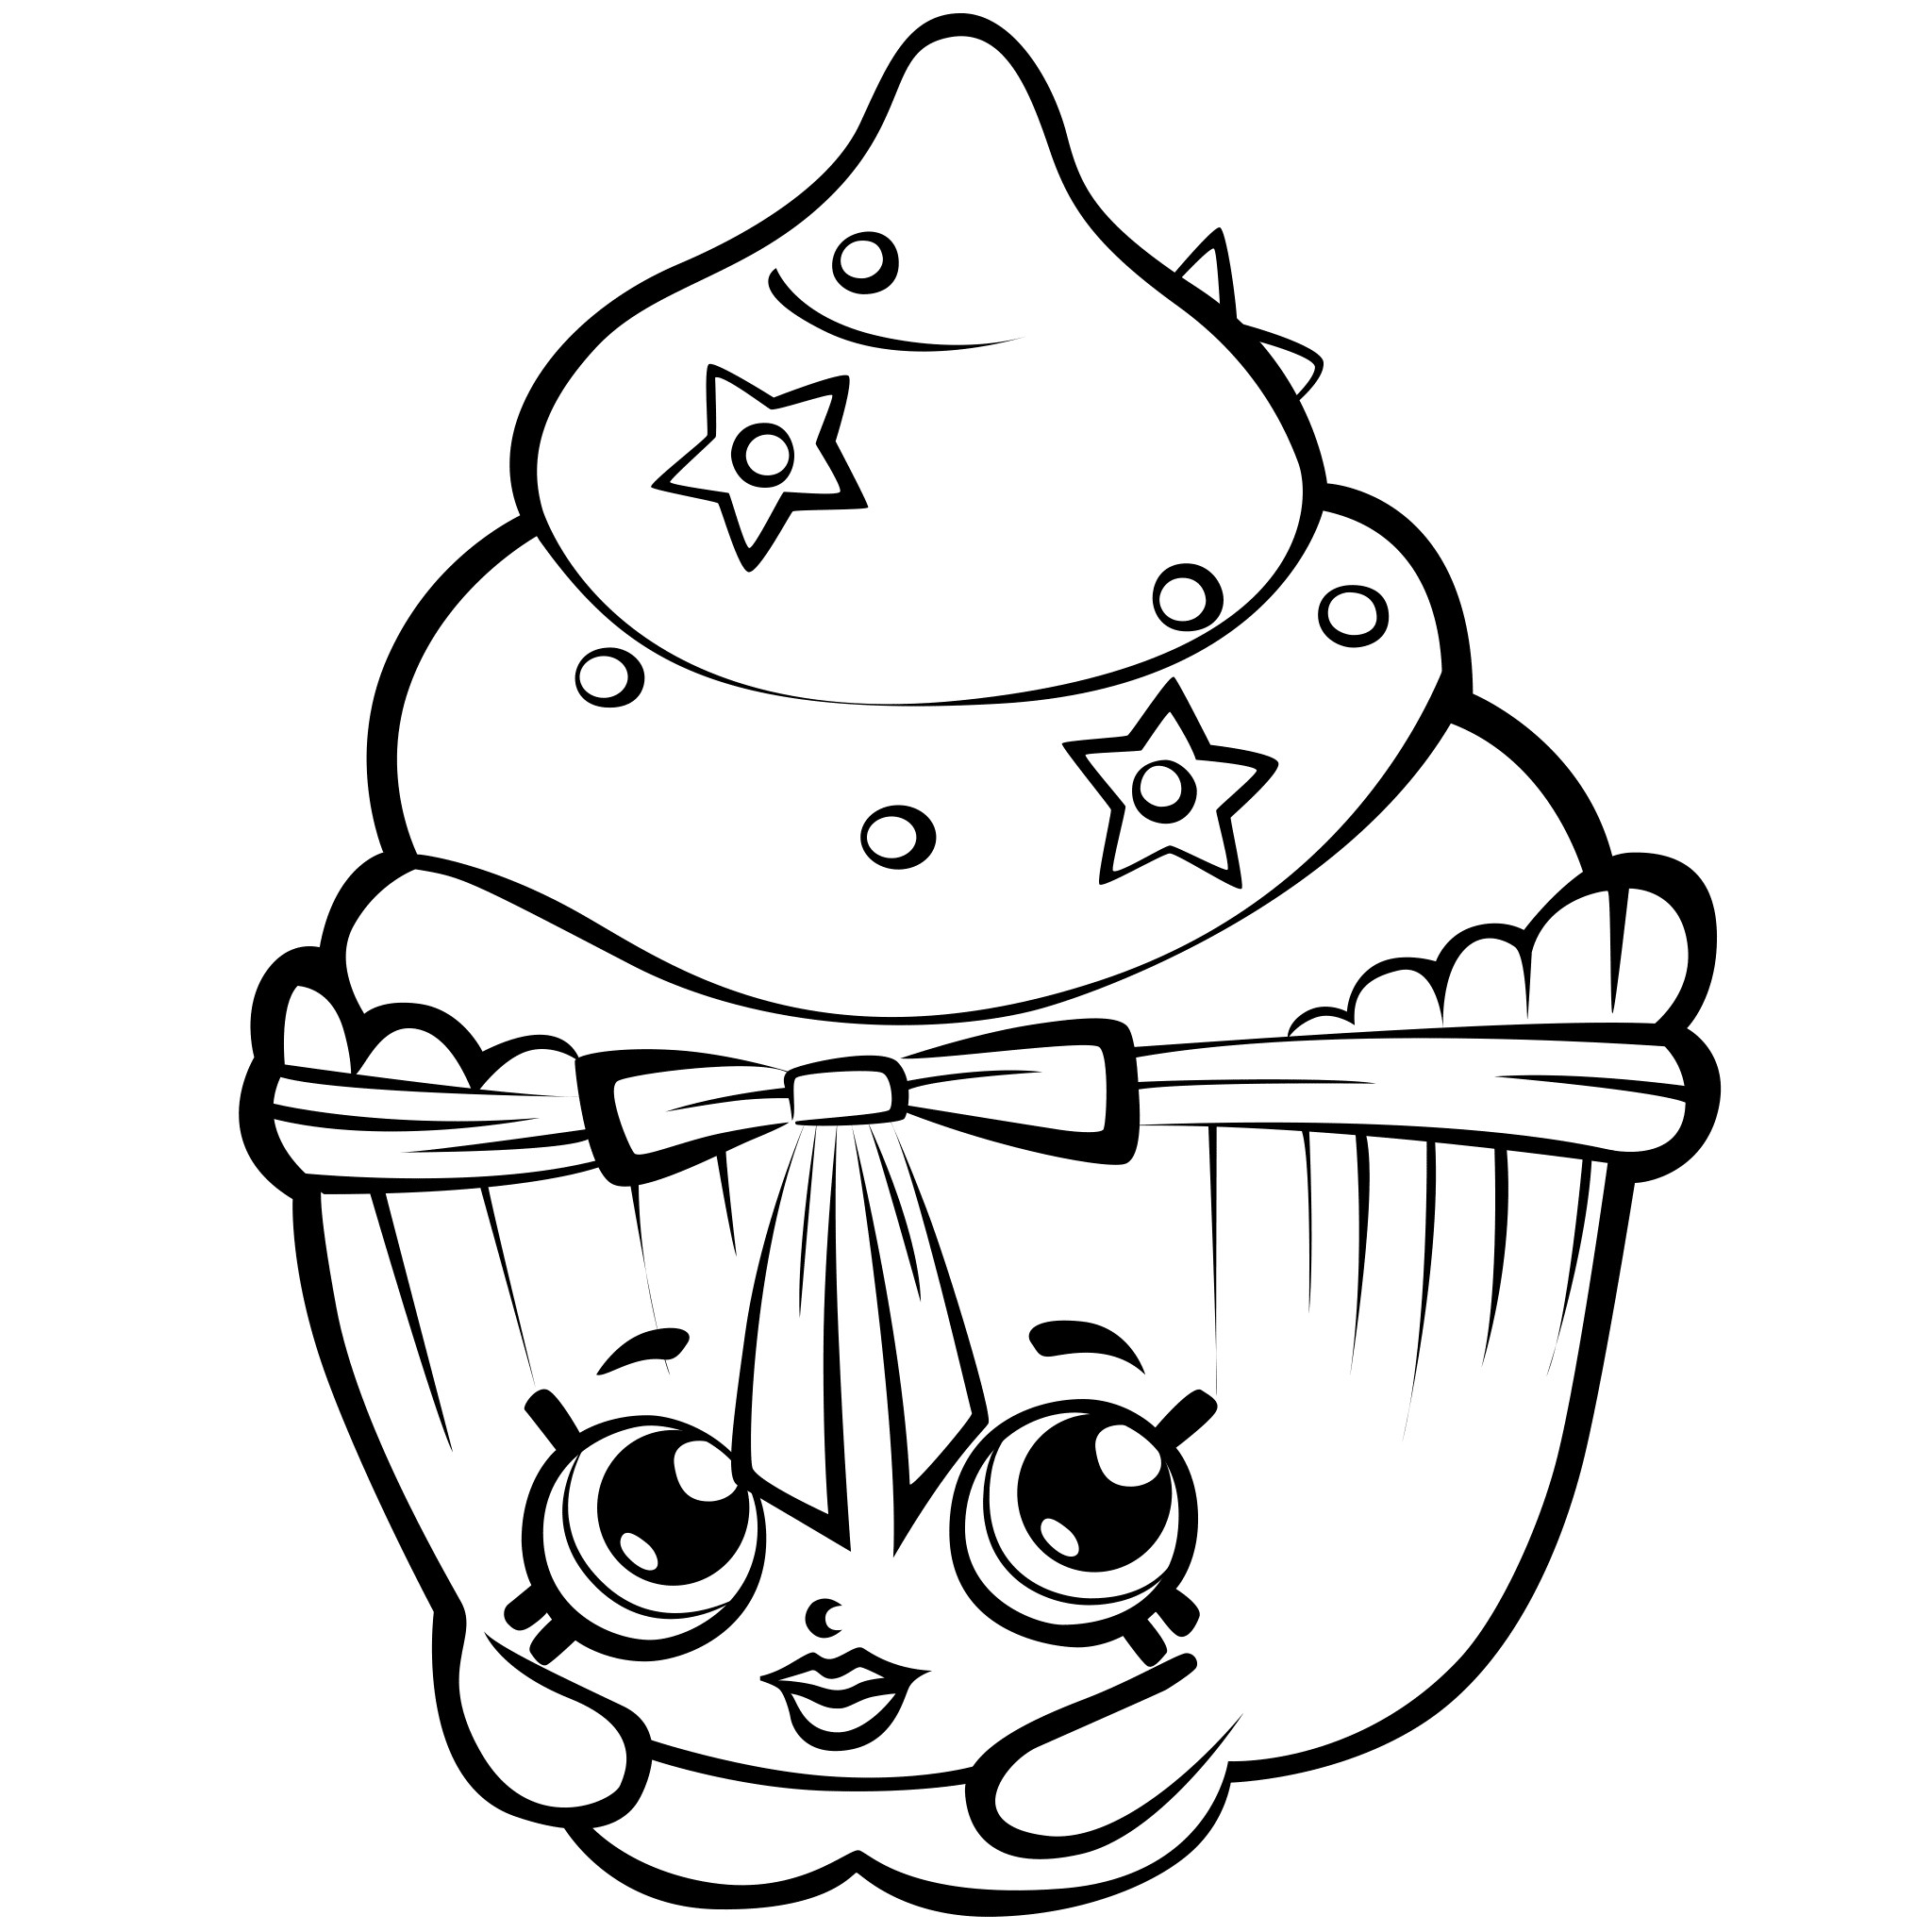 2048x2048 Free Printable Shopkins Snow Crush Coloring Pages Download